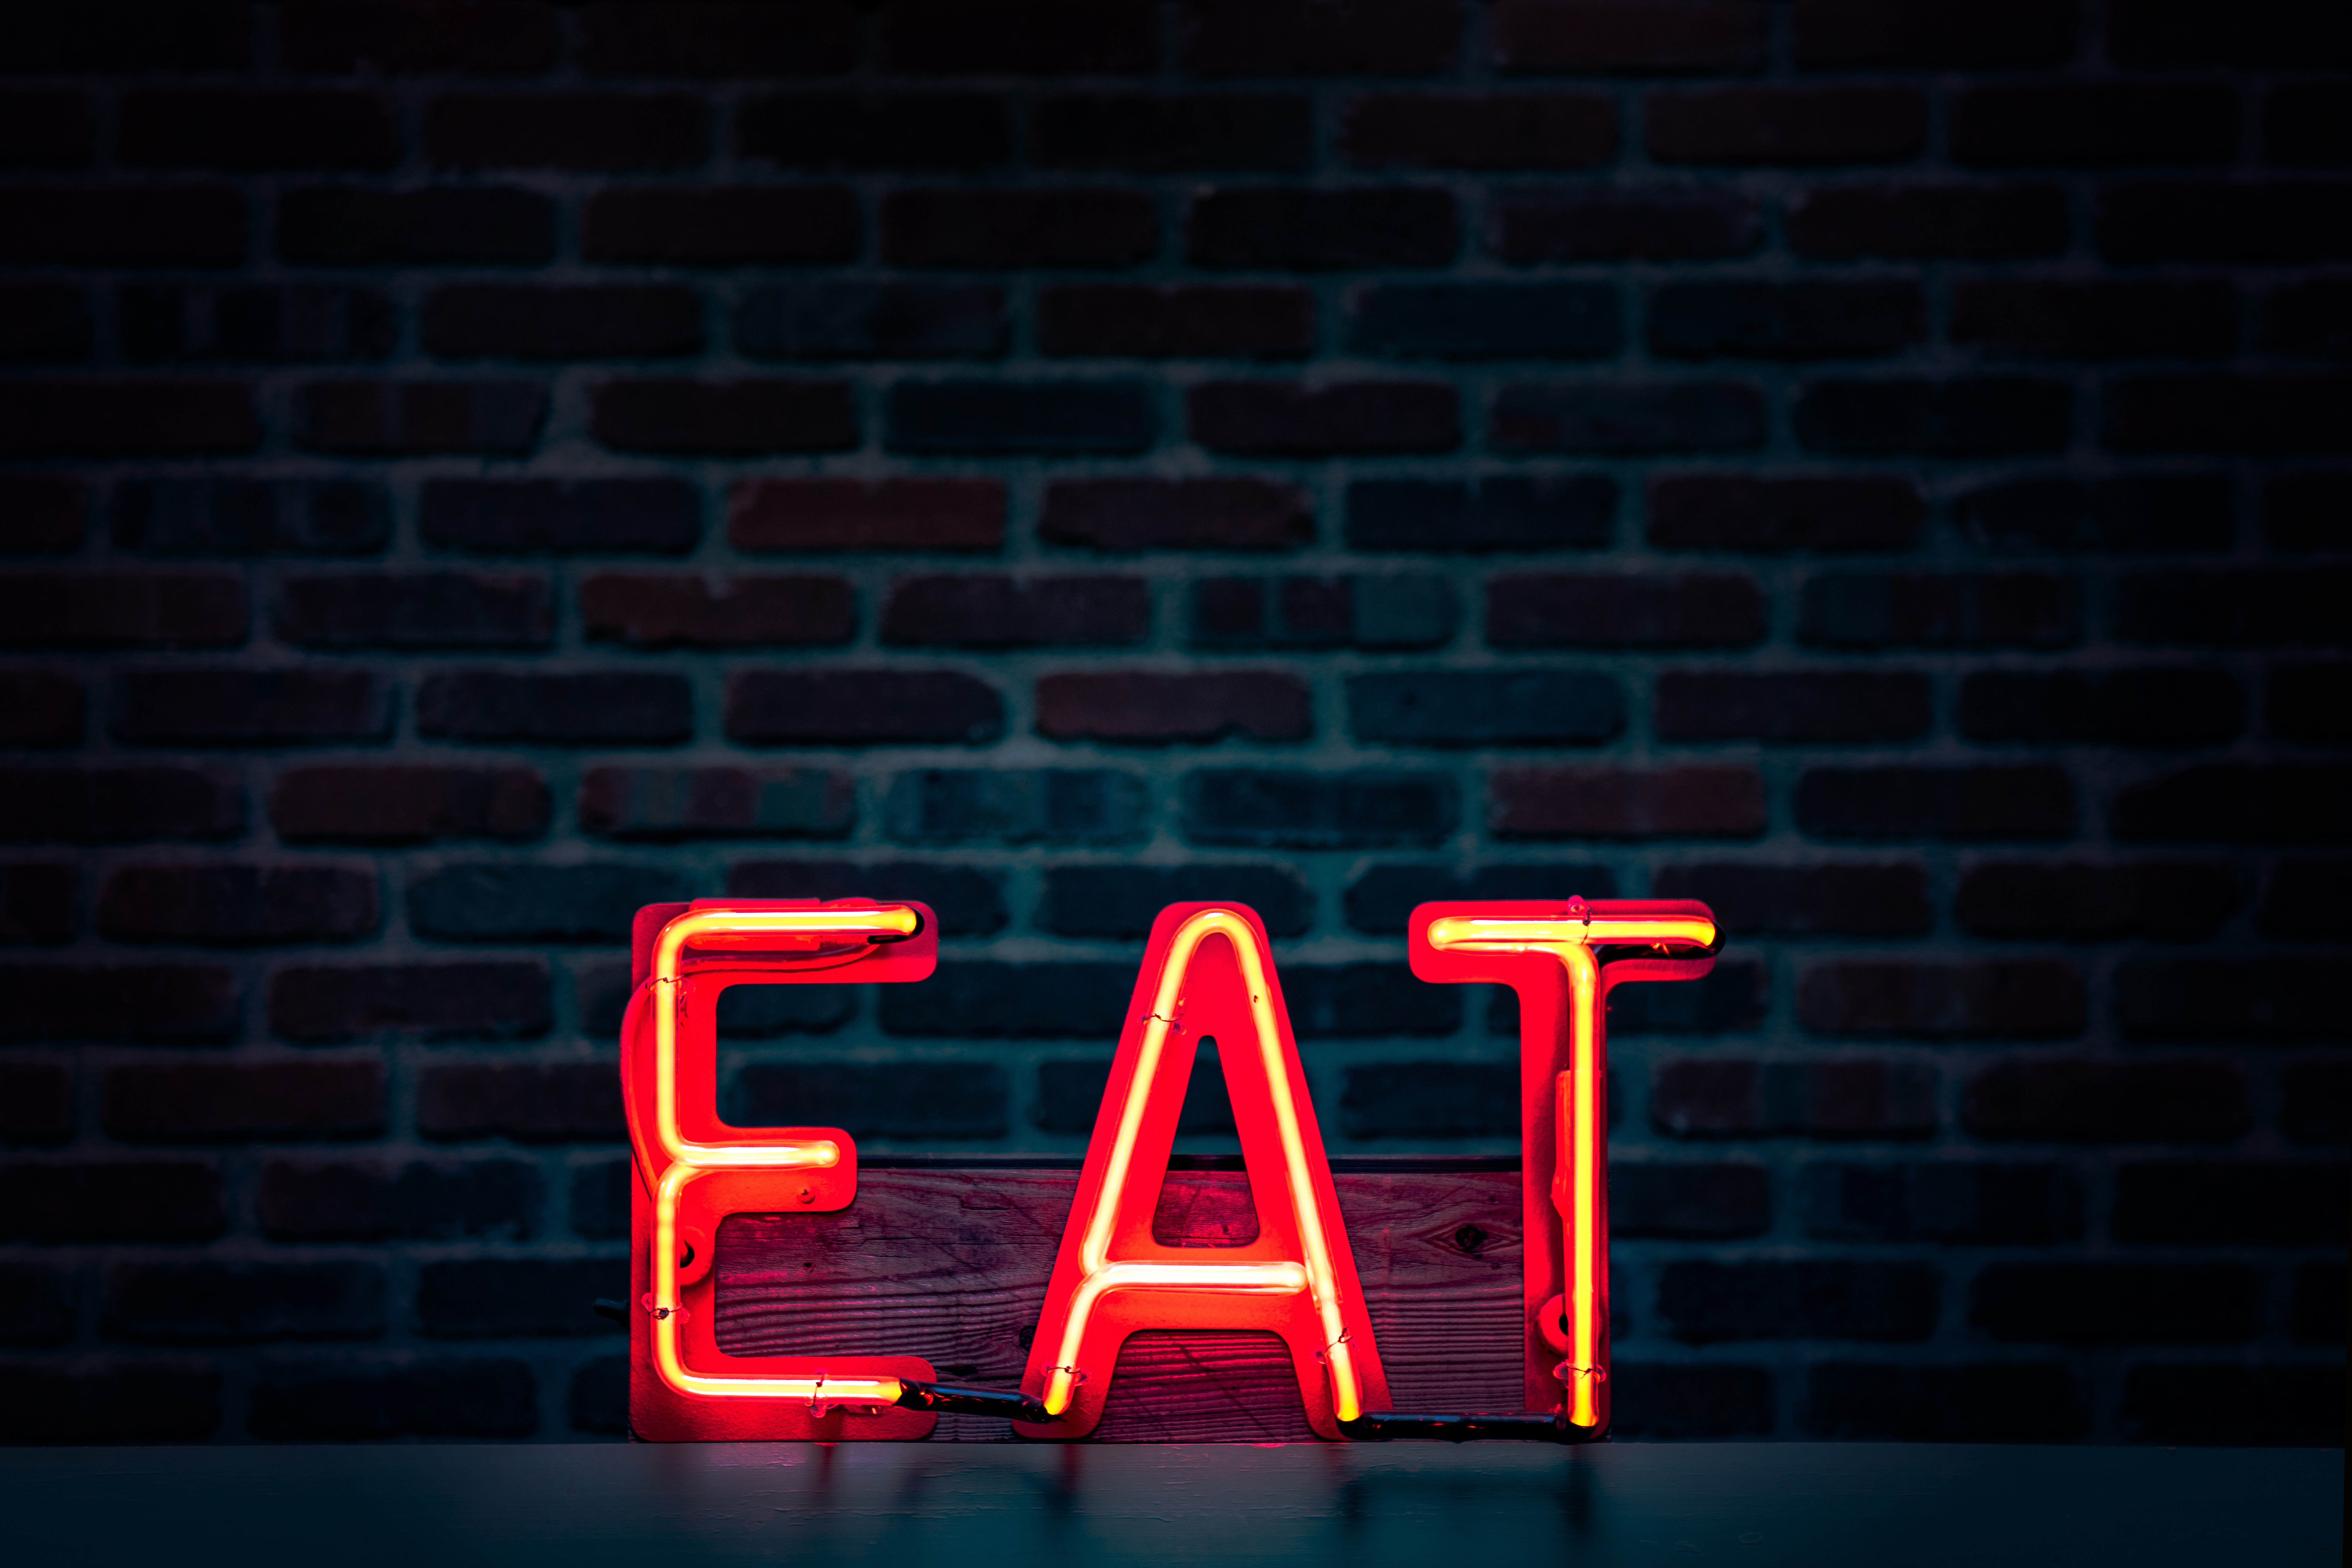 Treatment for Eating disorders: anorexia, bulimia, body image, binge eating disorder, eating disorder therapy